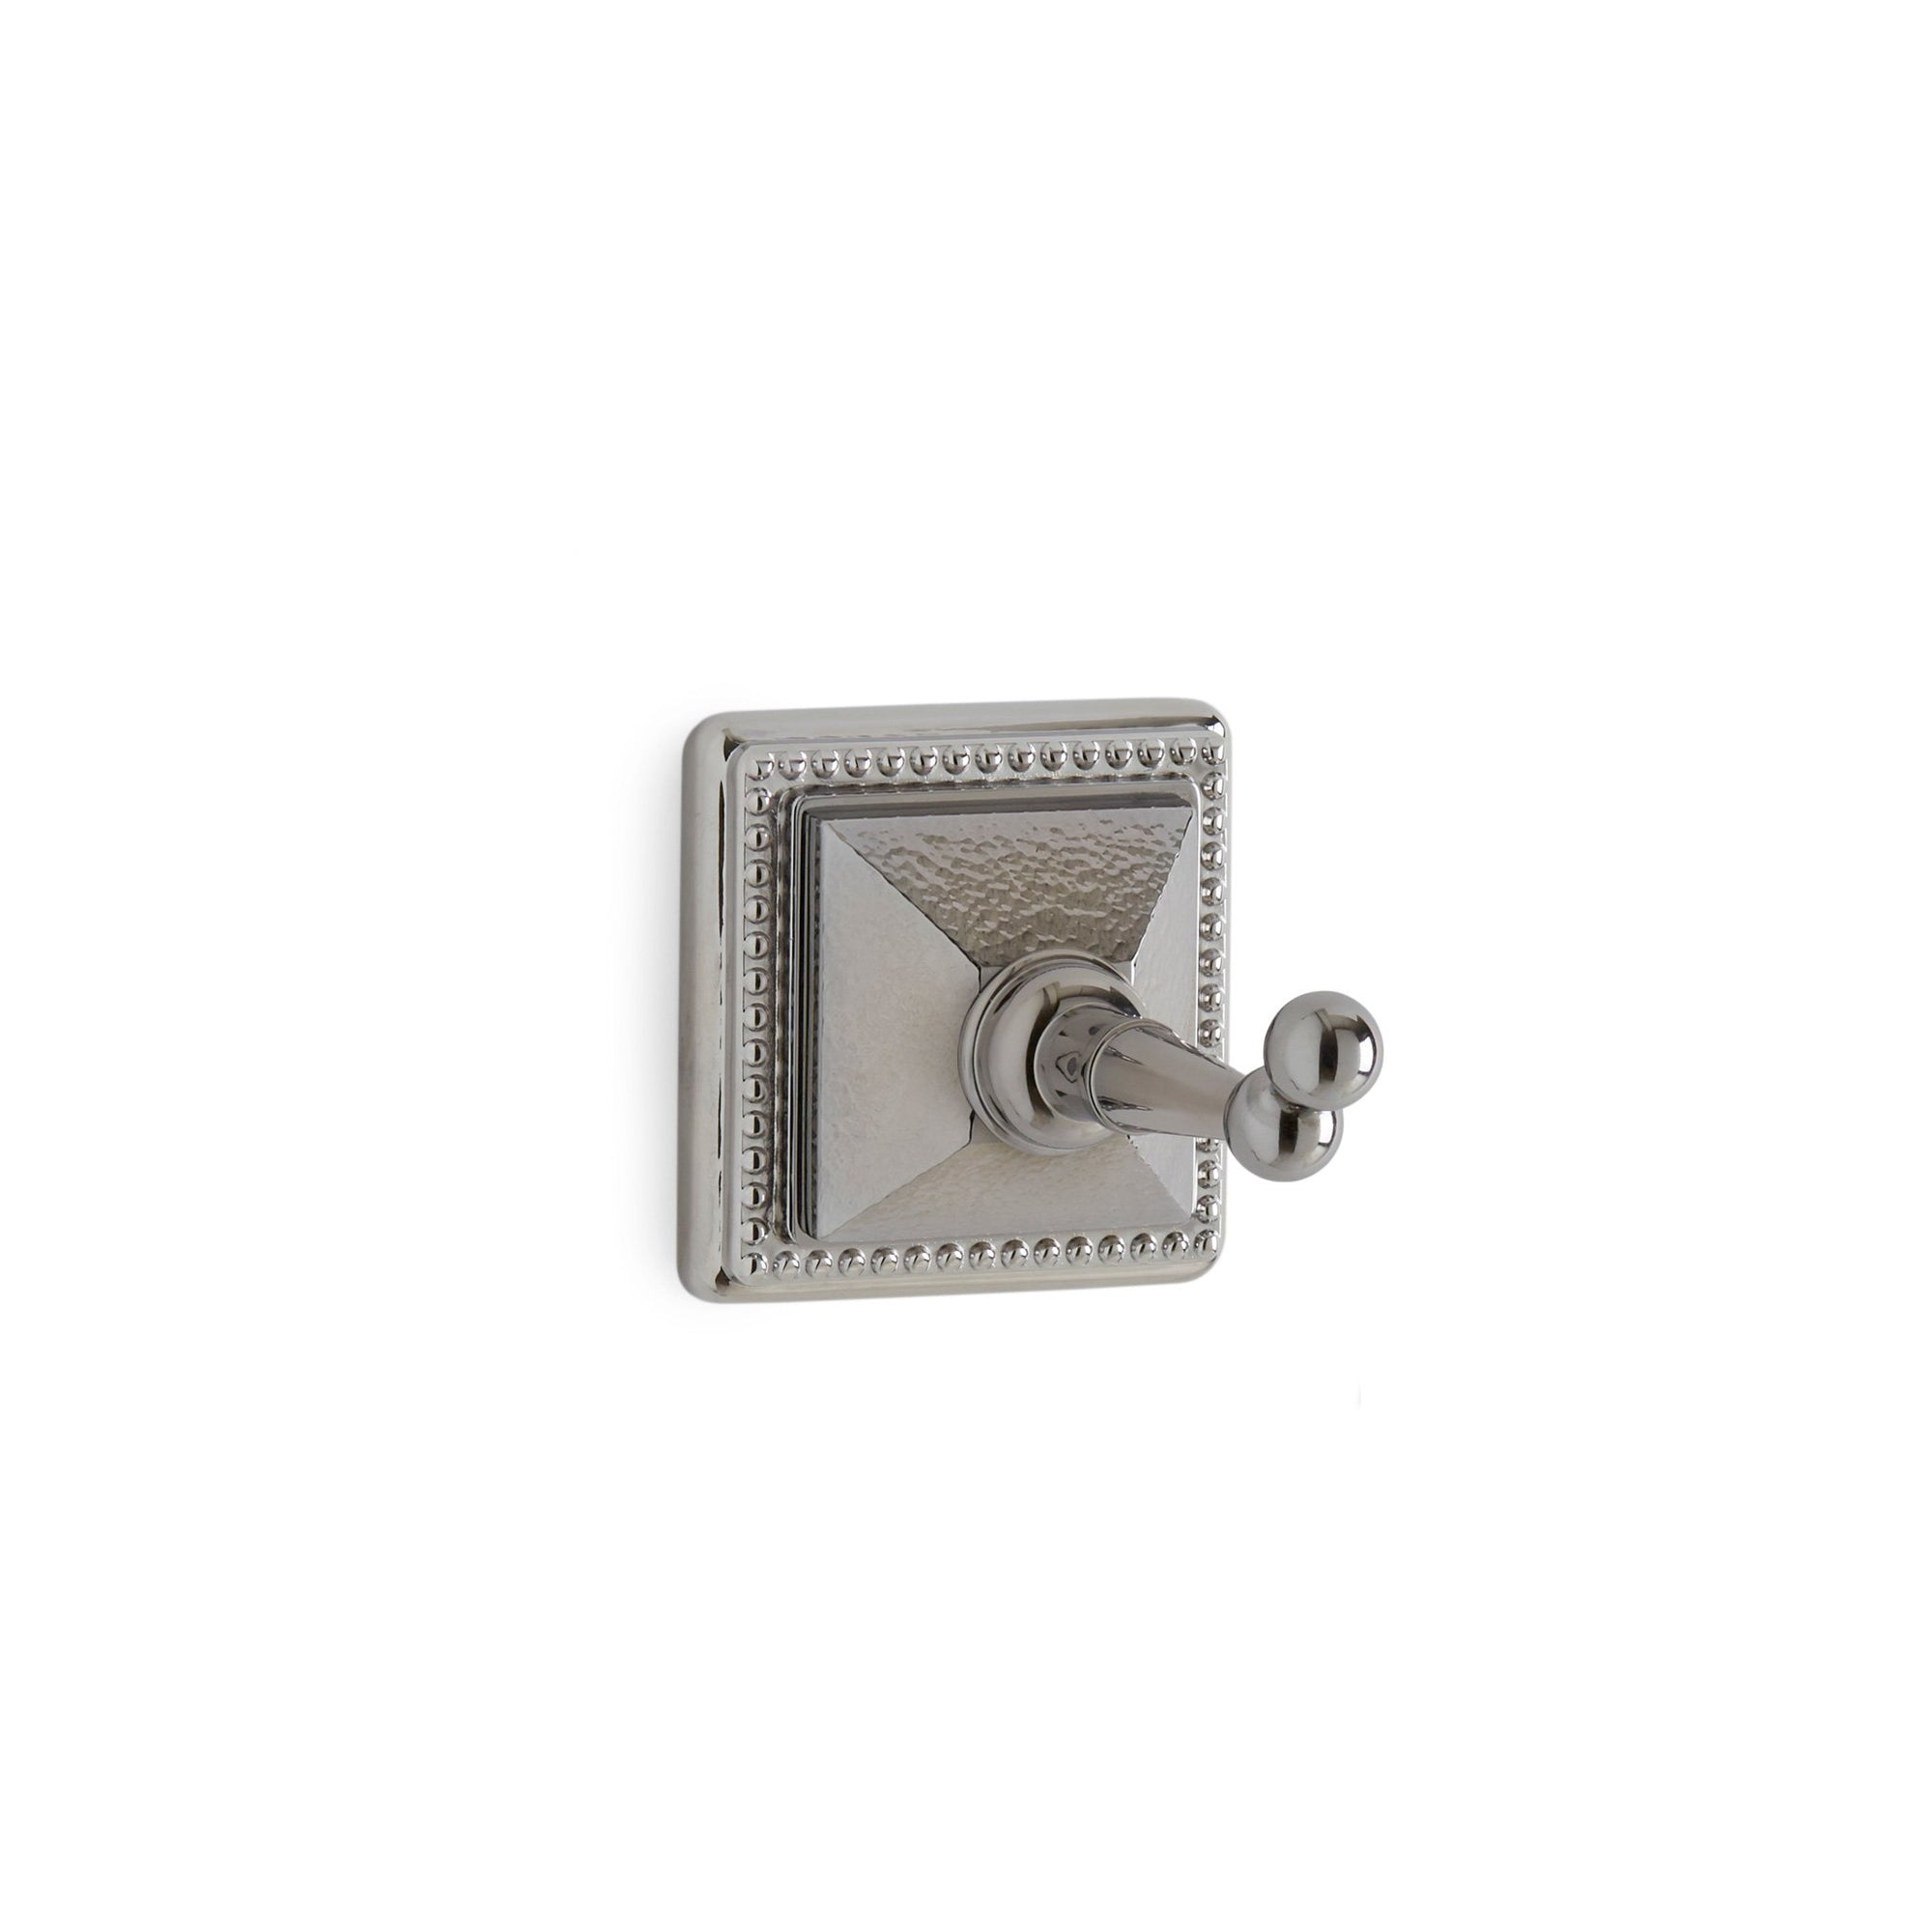 3402-HMRD-CP Sherle Wagner International Hammered Pyramid Hook in Polished Chrome metal finish